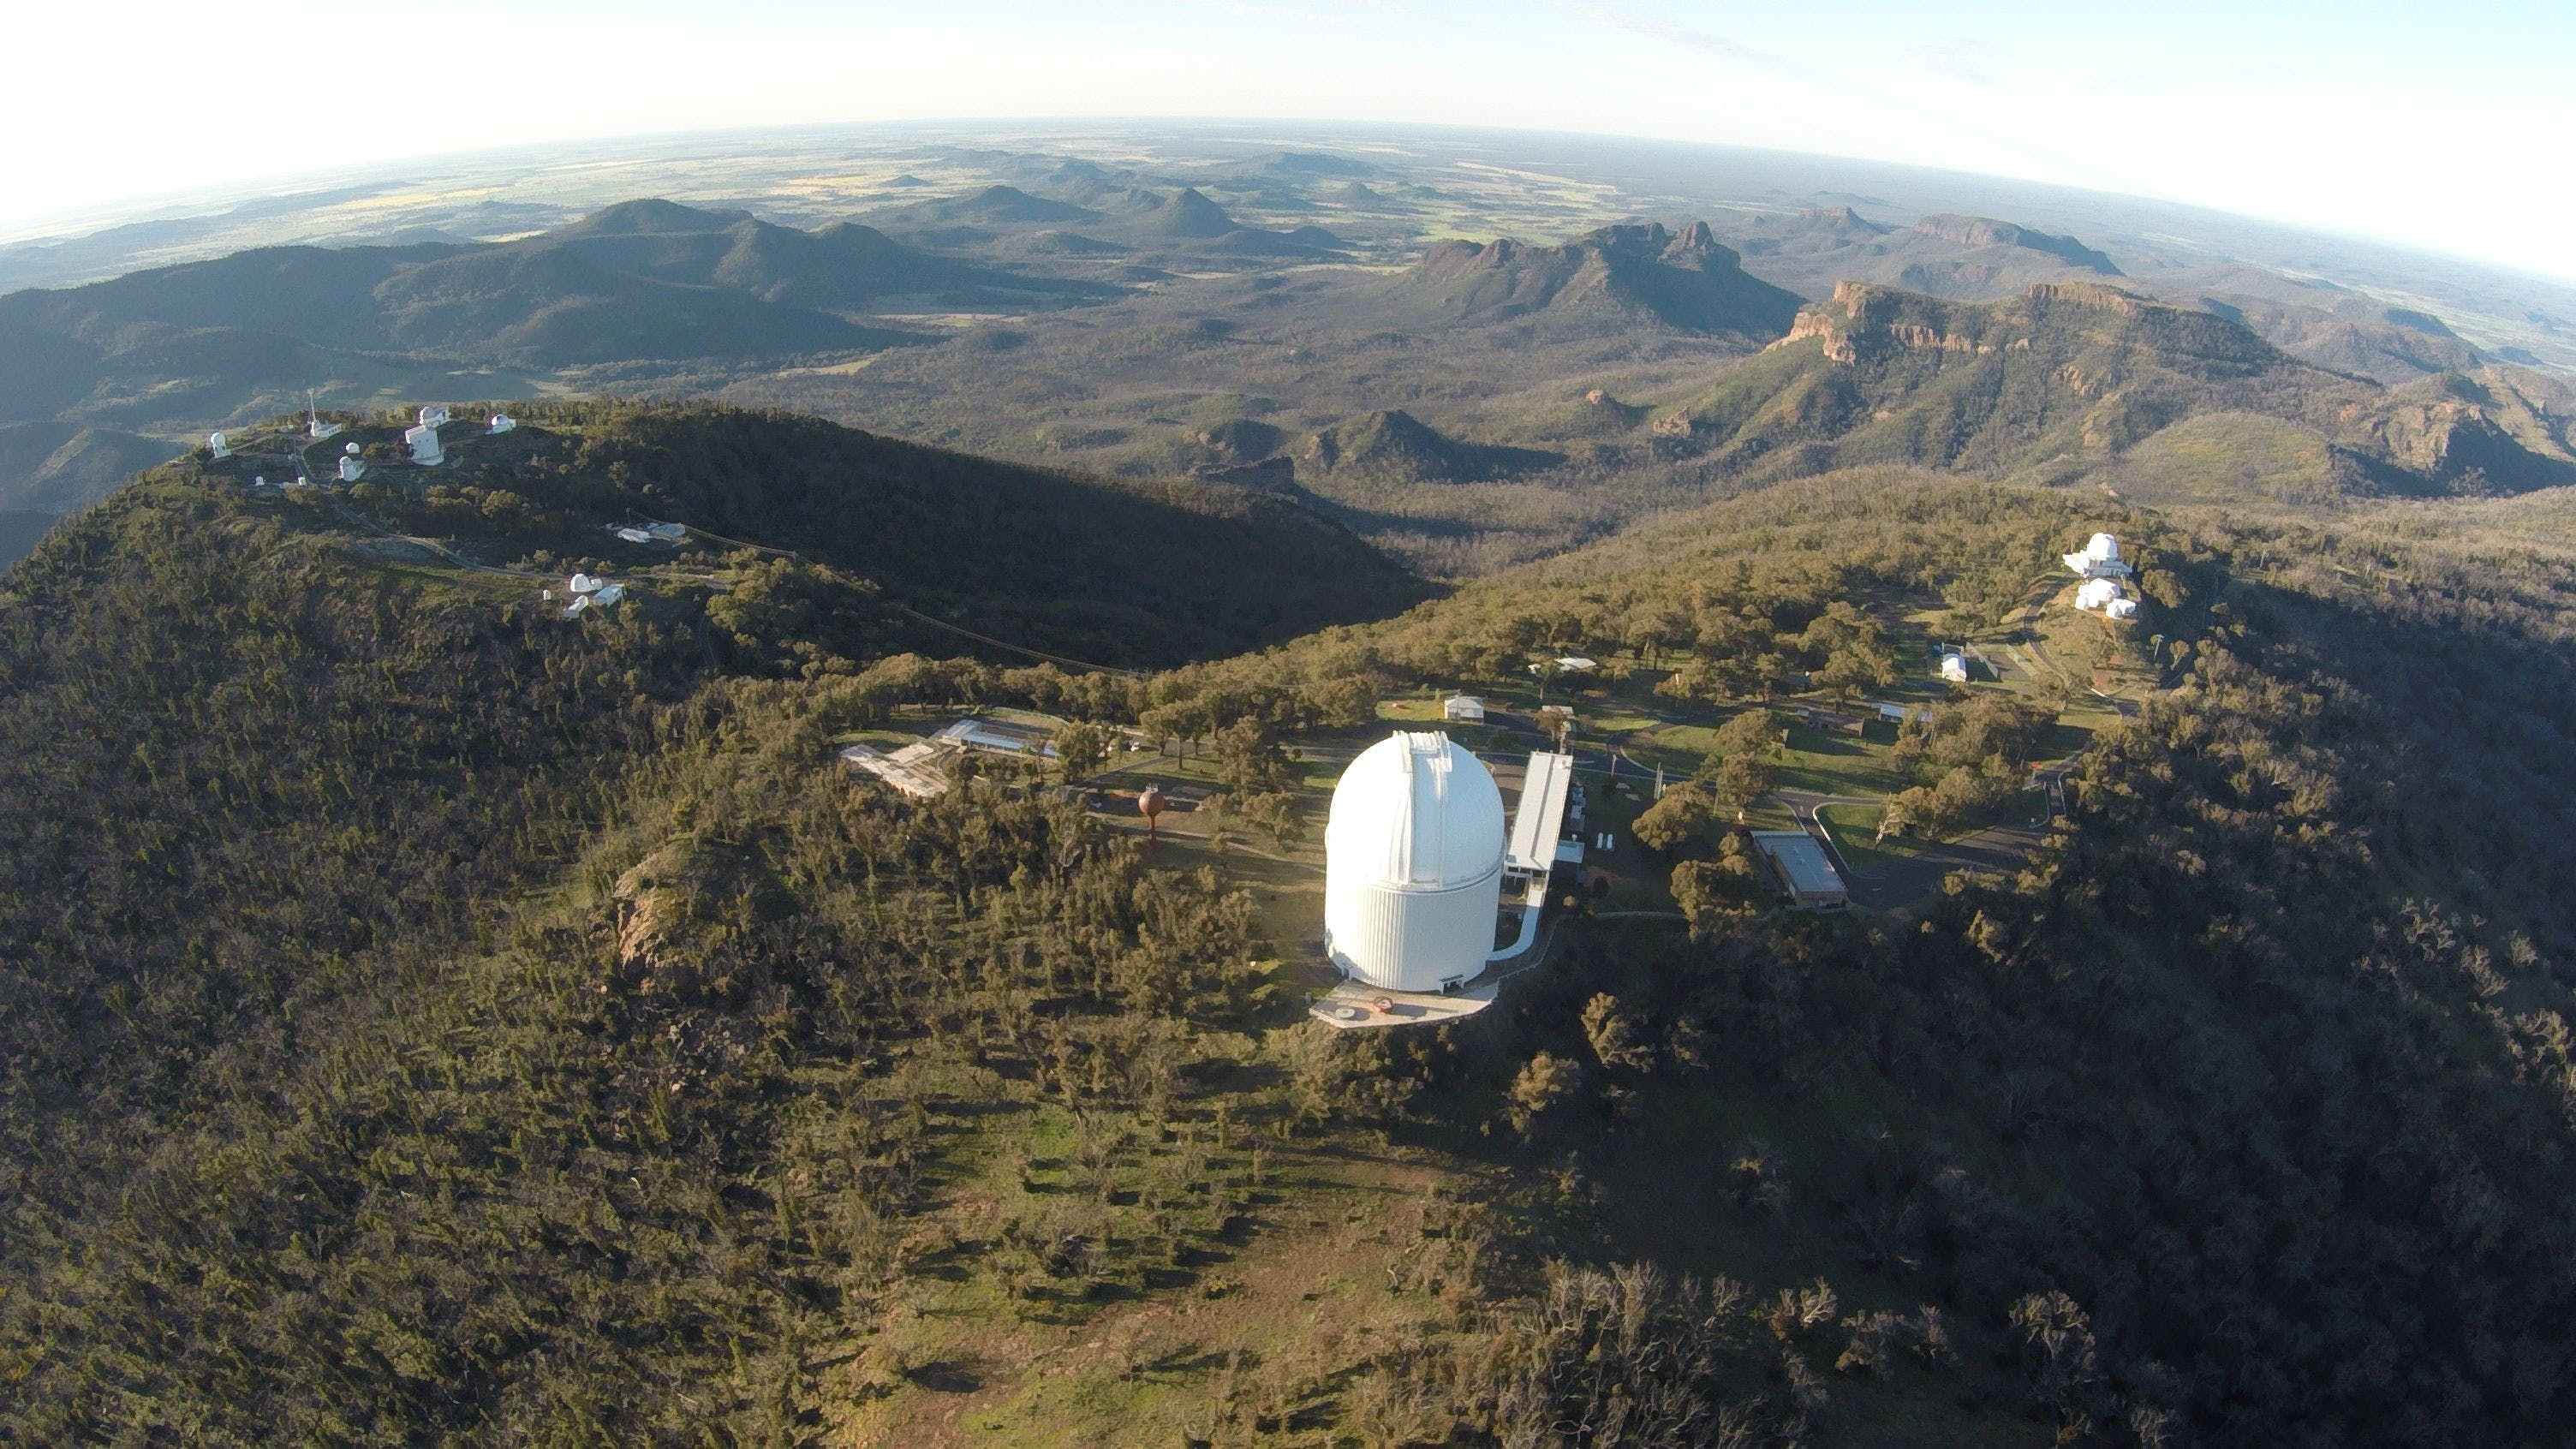 Siding Spring Observatory - QLD Tourism